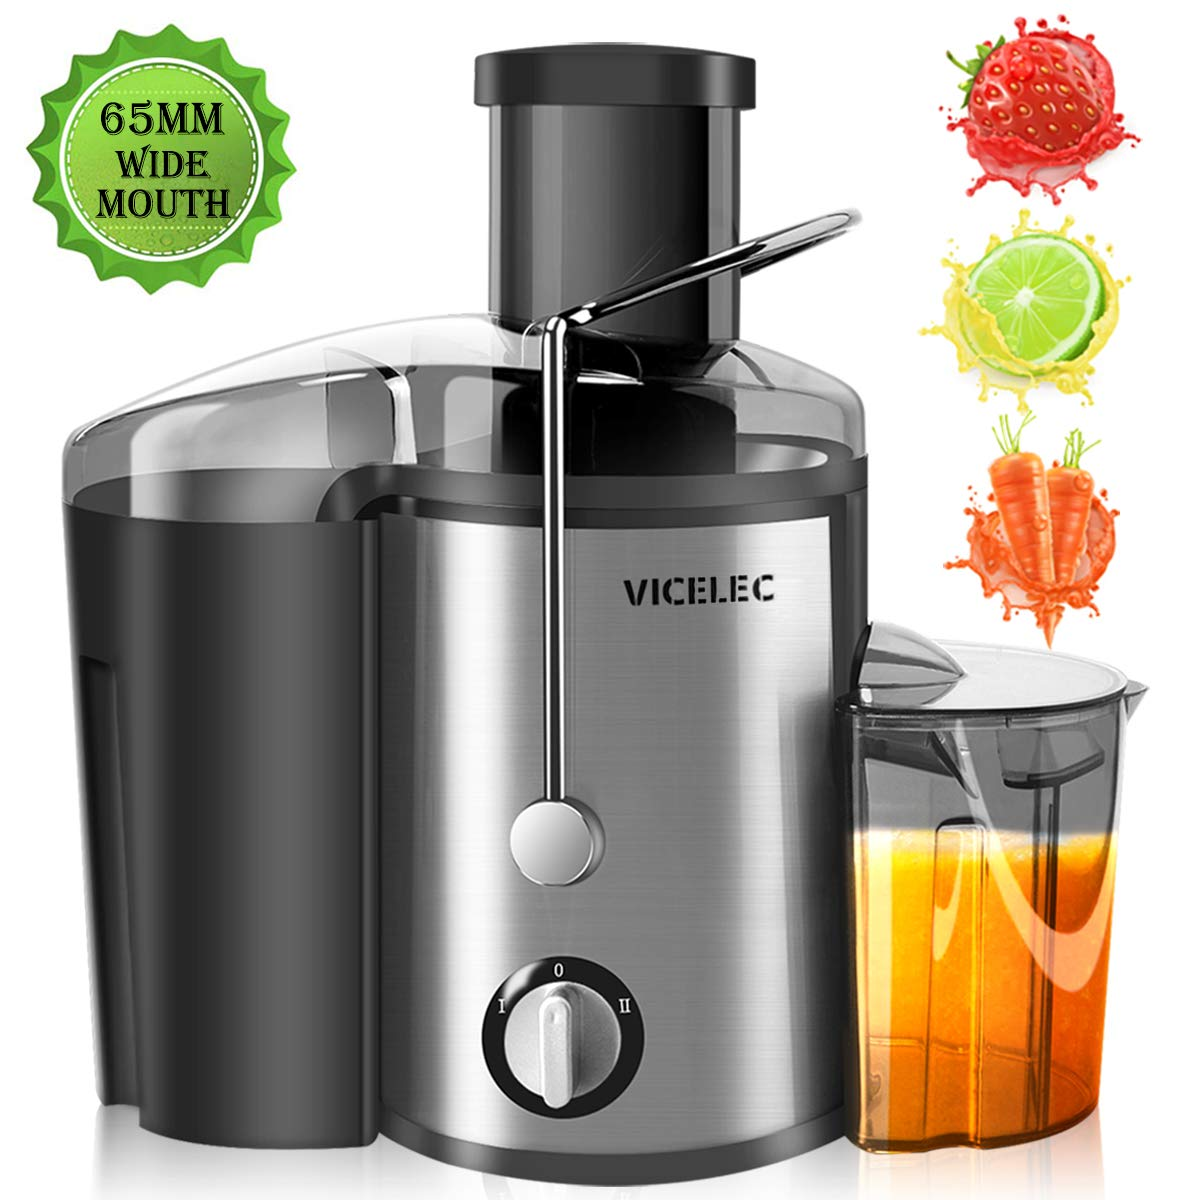 Juicer Machines with Wide Mouth Dual Speed Centrifugal Juicer for Fruits and Vegetable, 600W Stainless Steel Juice Extractor